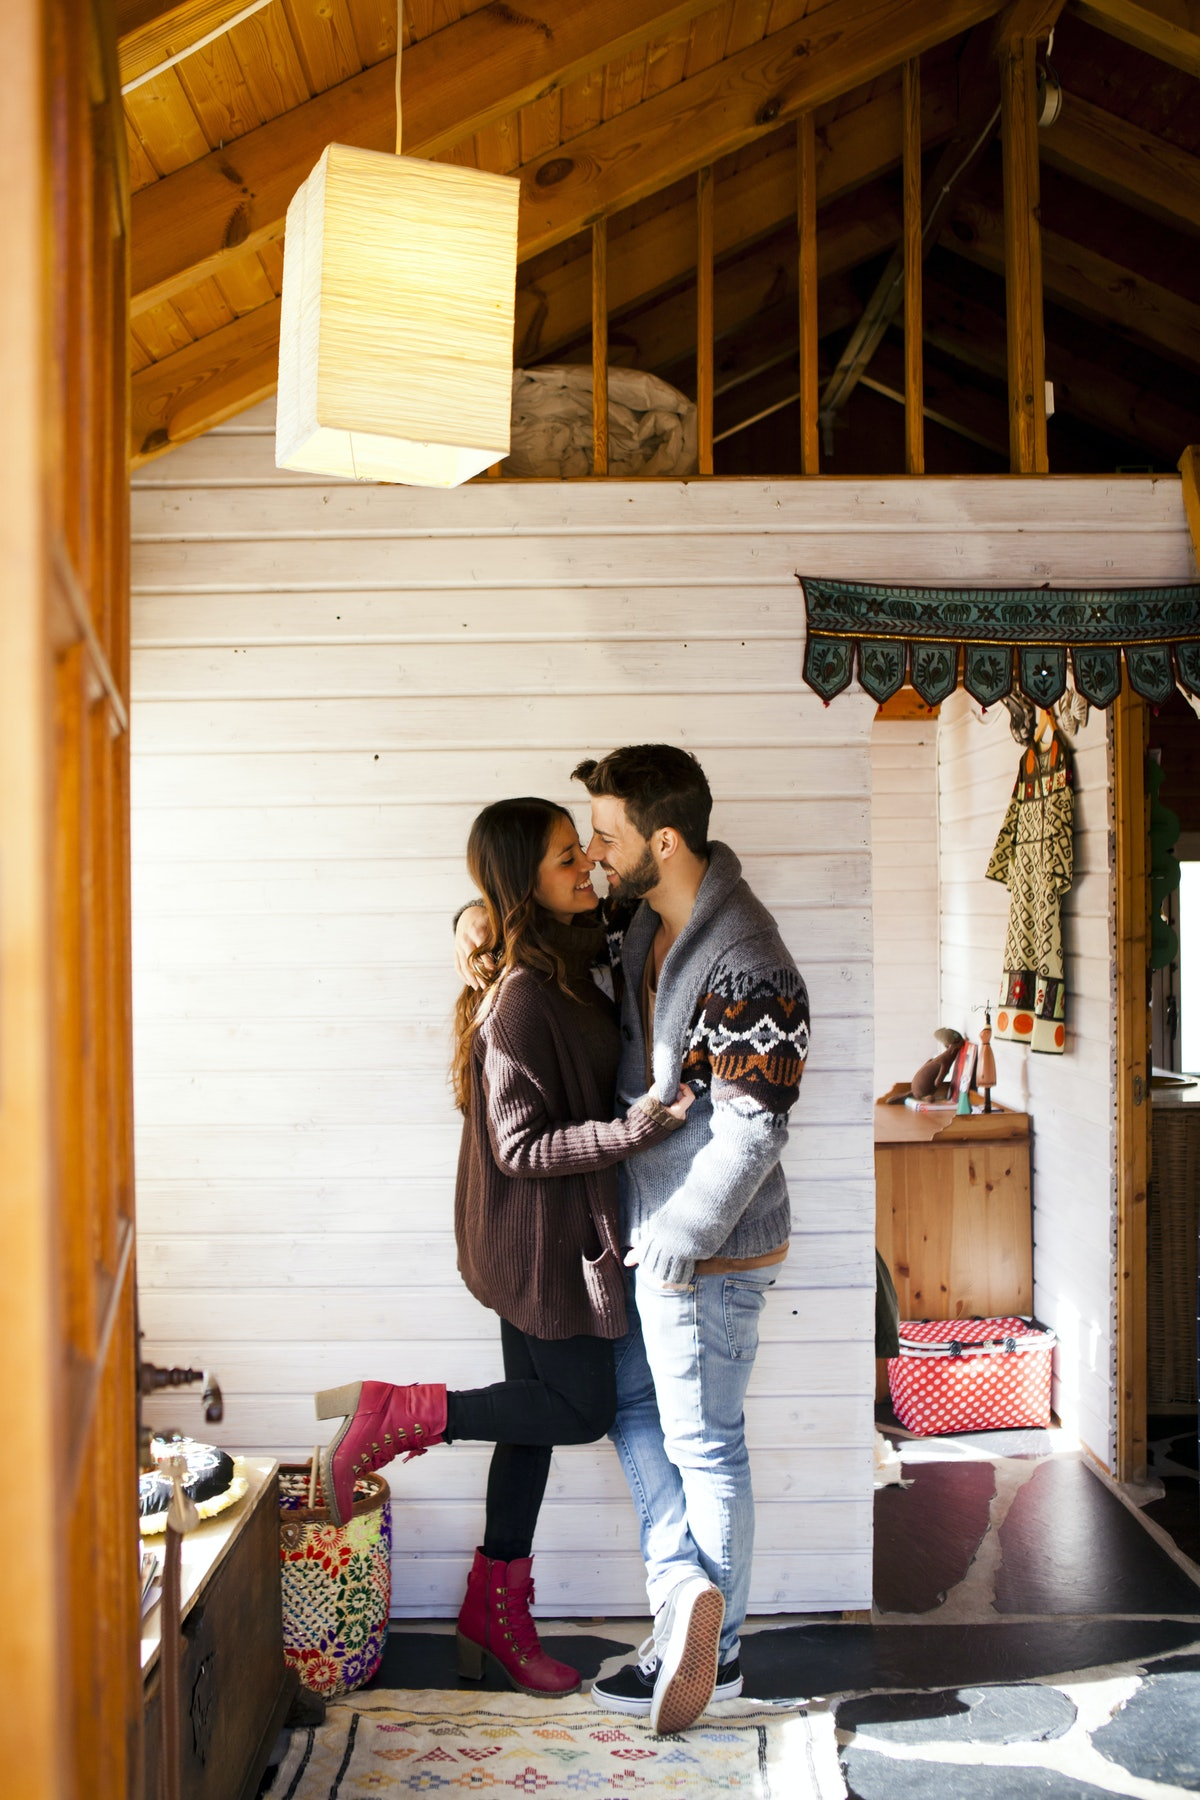 A couple shares a romantic moment while hanging out in a cabin during a winter getaway.